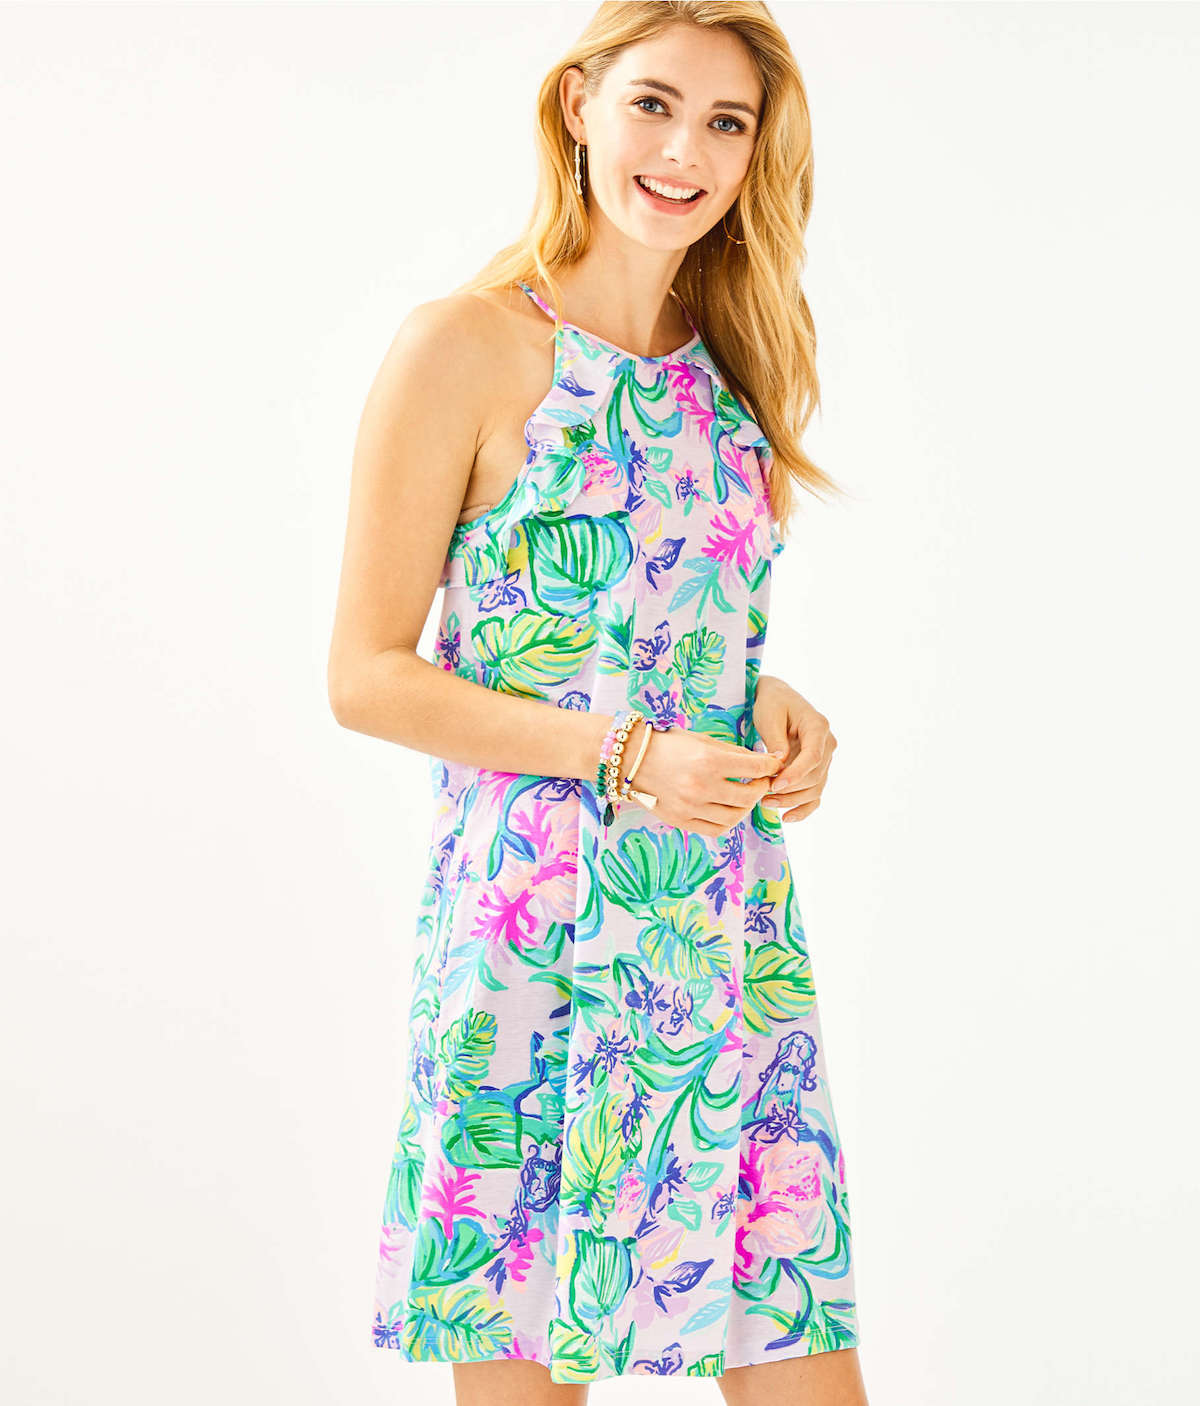 Lilly Pulitzer Billie Ruffle DressLilly Pulitzer Marlowe Boatneck T-Shirt Dress